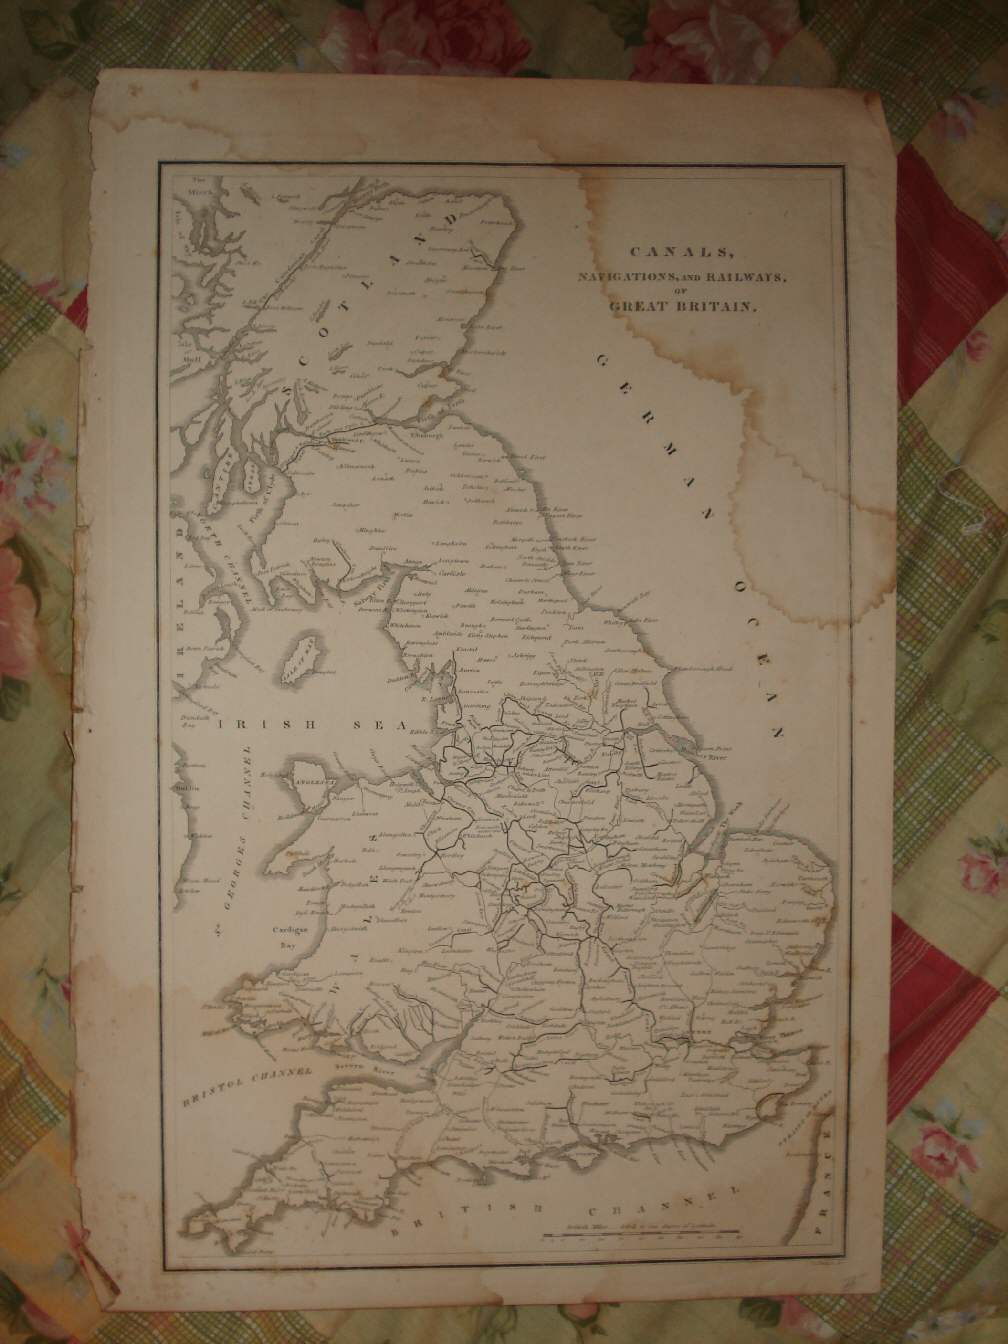 ANTIQUE MAP ENGLAND SCOTLAND CS RAILROAD RAILWAY NR | eBay on england river map, england train system map, england bus map, england steam trains, england train routes, england railway, west country england map, walk cotswold england map, england airport map, england county map 1800, lake country england map, england road map, england ocean map, england map with latitude and longitude, england districts map, stonehenge england map, train in england map, england agriculture map, derbyshire england map, england rail system,